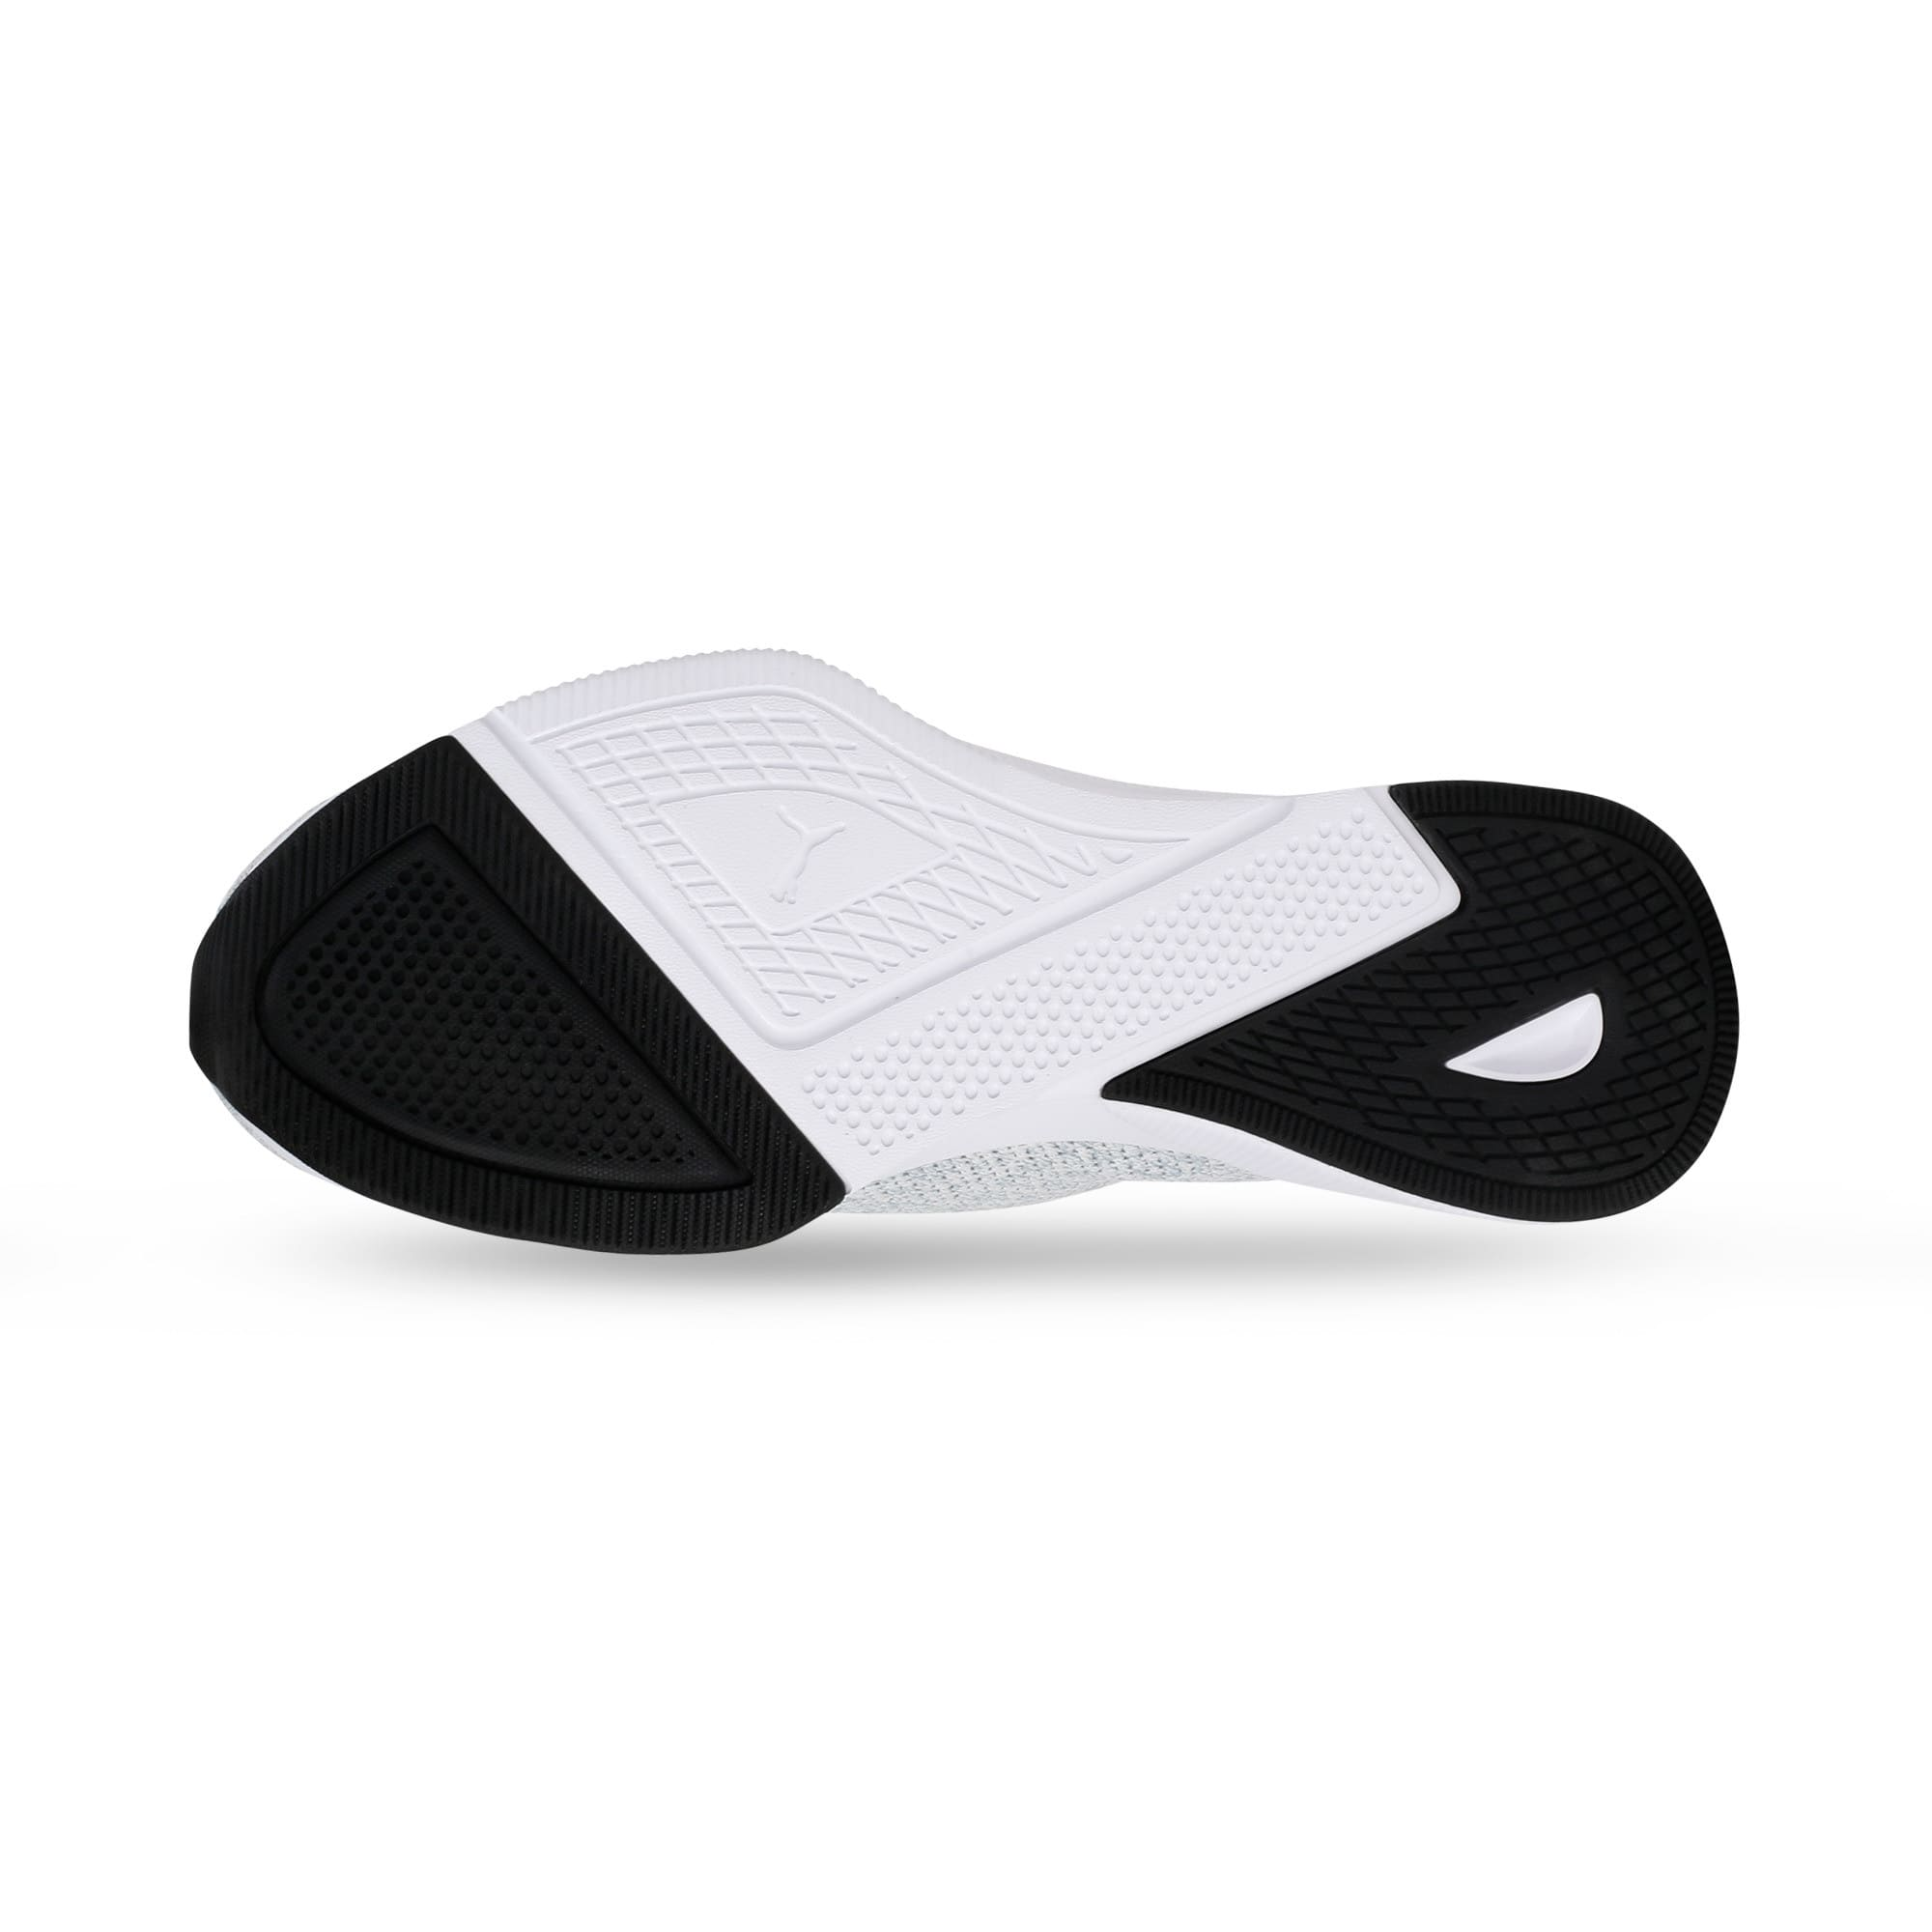 Thumbnail 4 of Flyer Runner Engineered Knit Men's Running Shoes, Puma White-Quarry-Puma Black, medium-IND